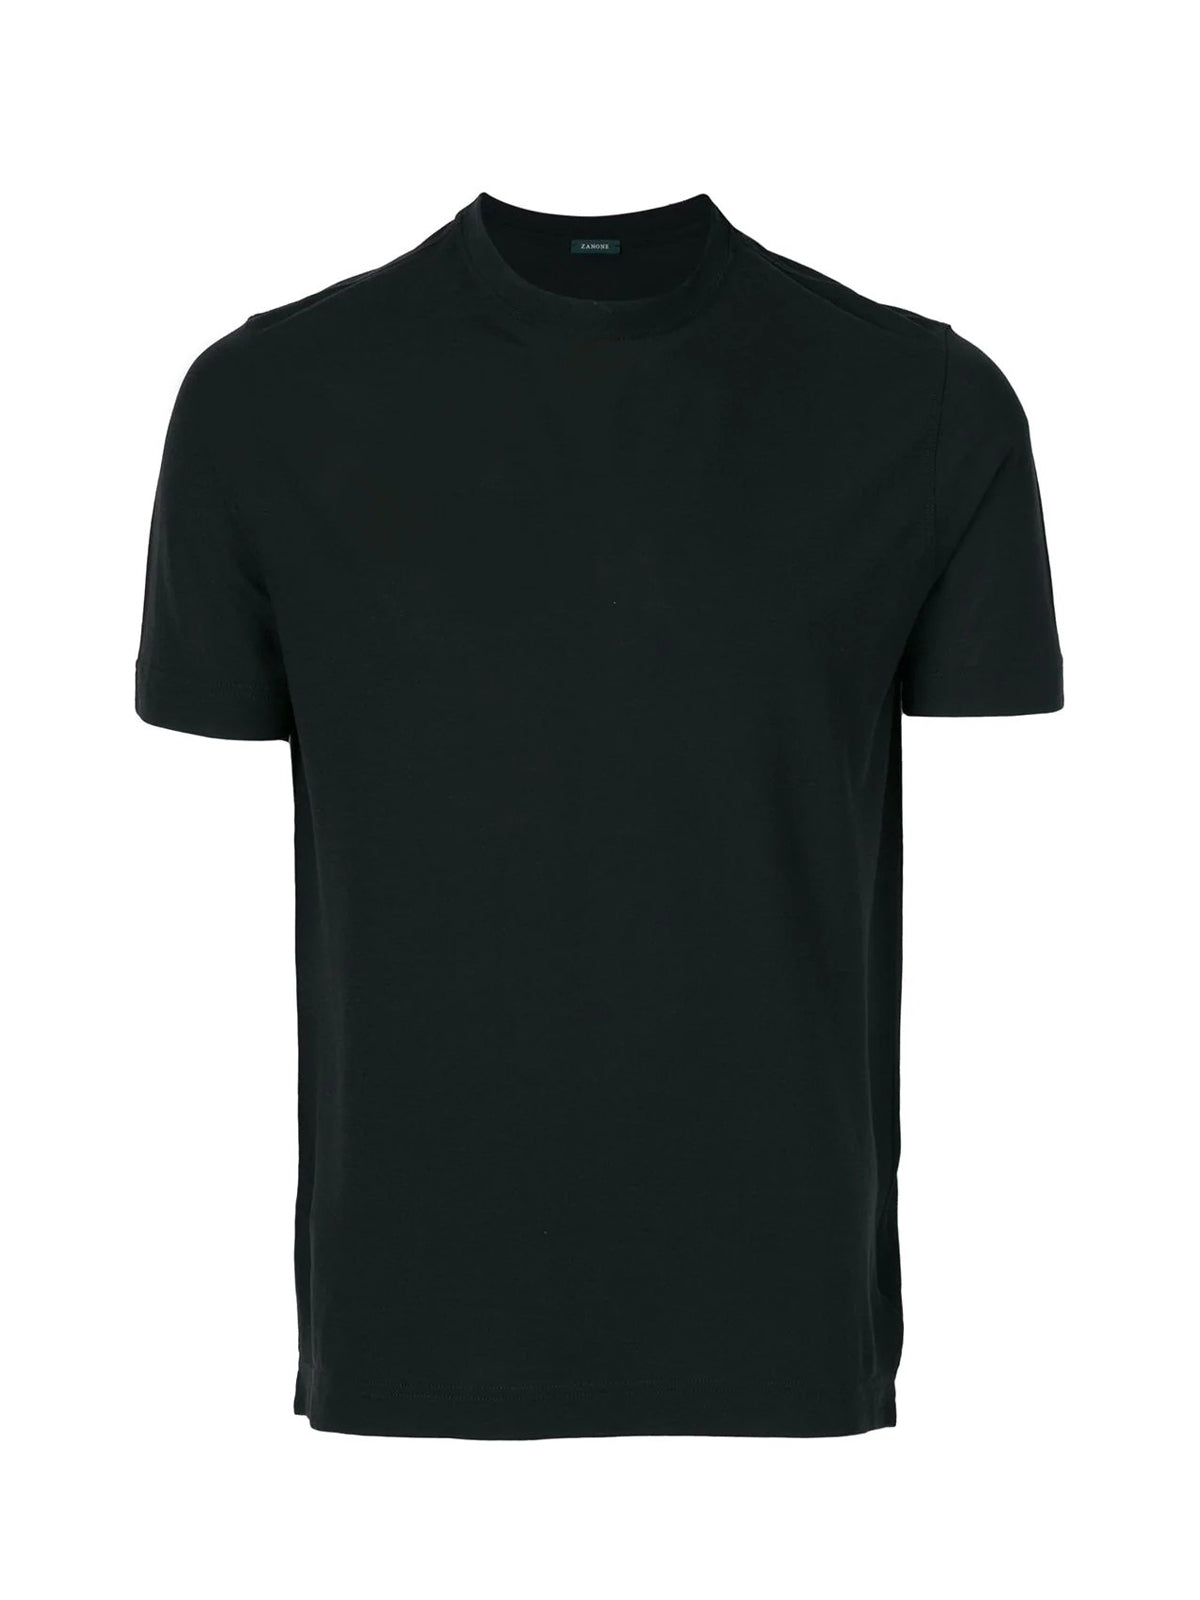 RELAXED-FIT COTTON T-SHIRT